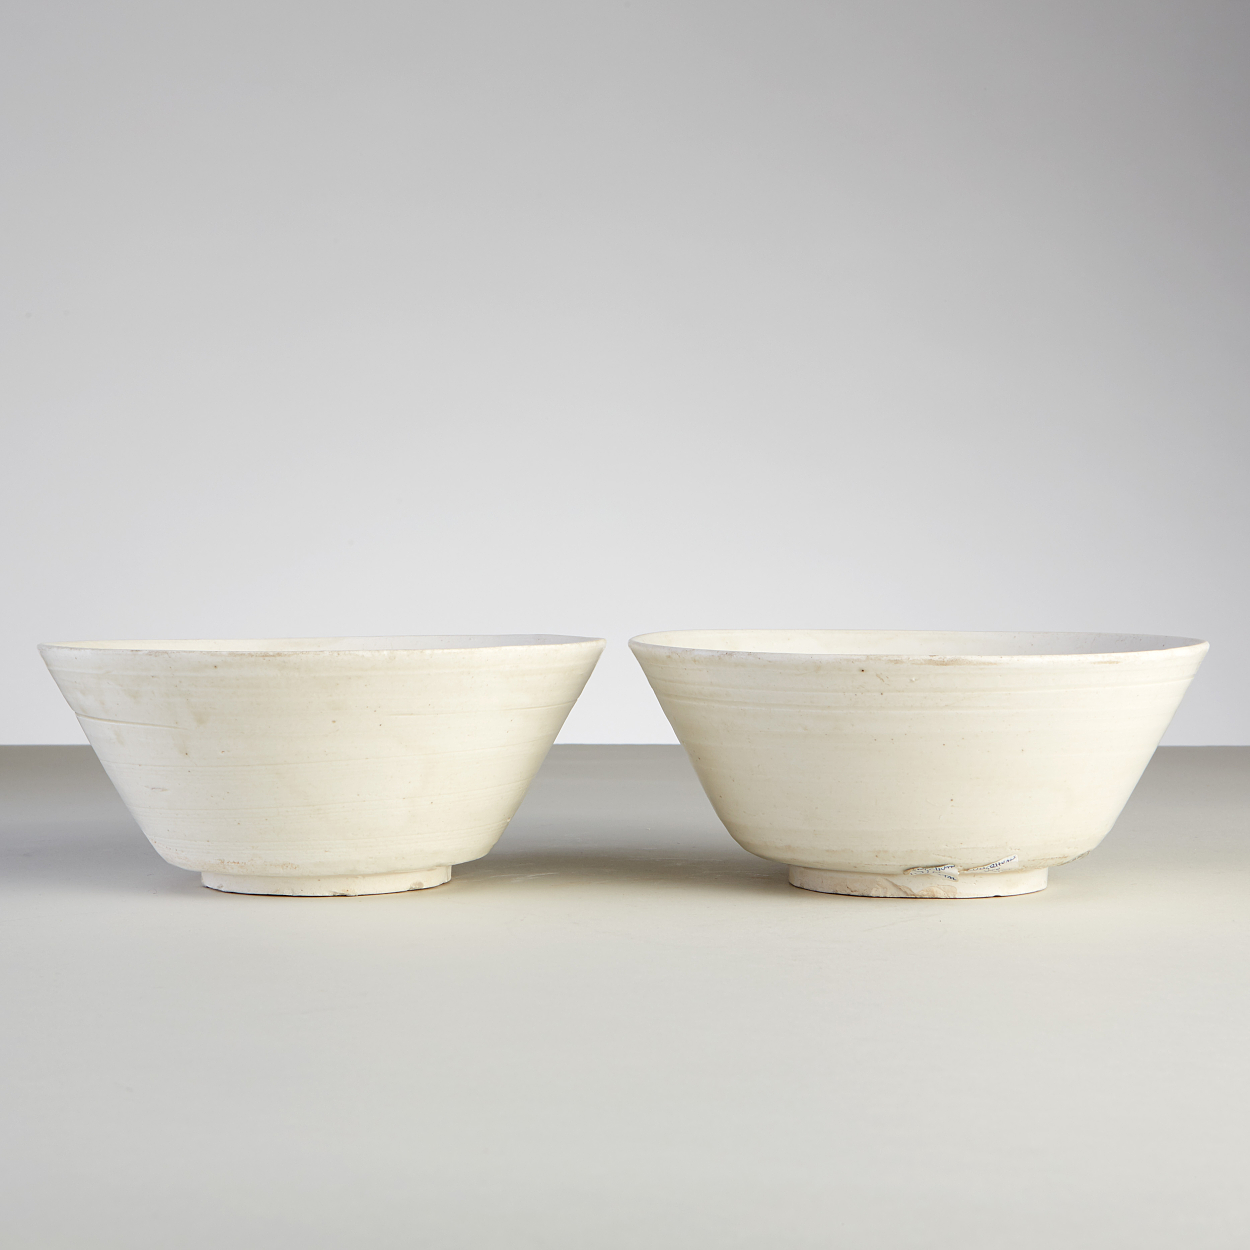 A Pair of White-Glazed Longquan Bowls